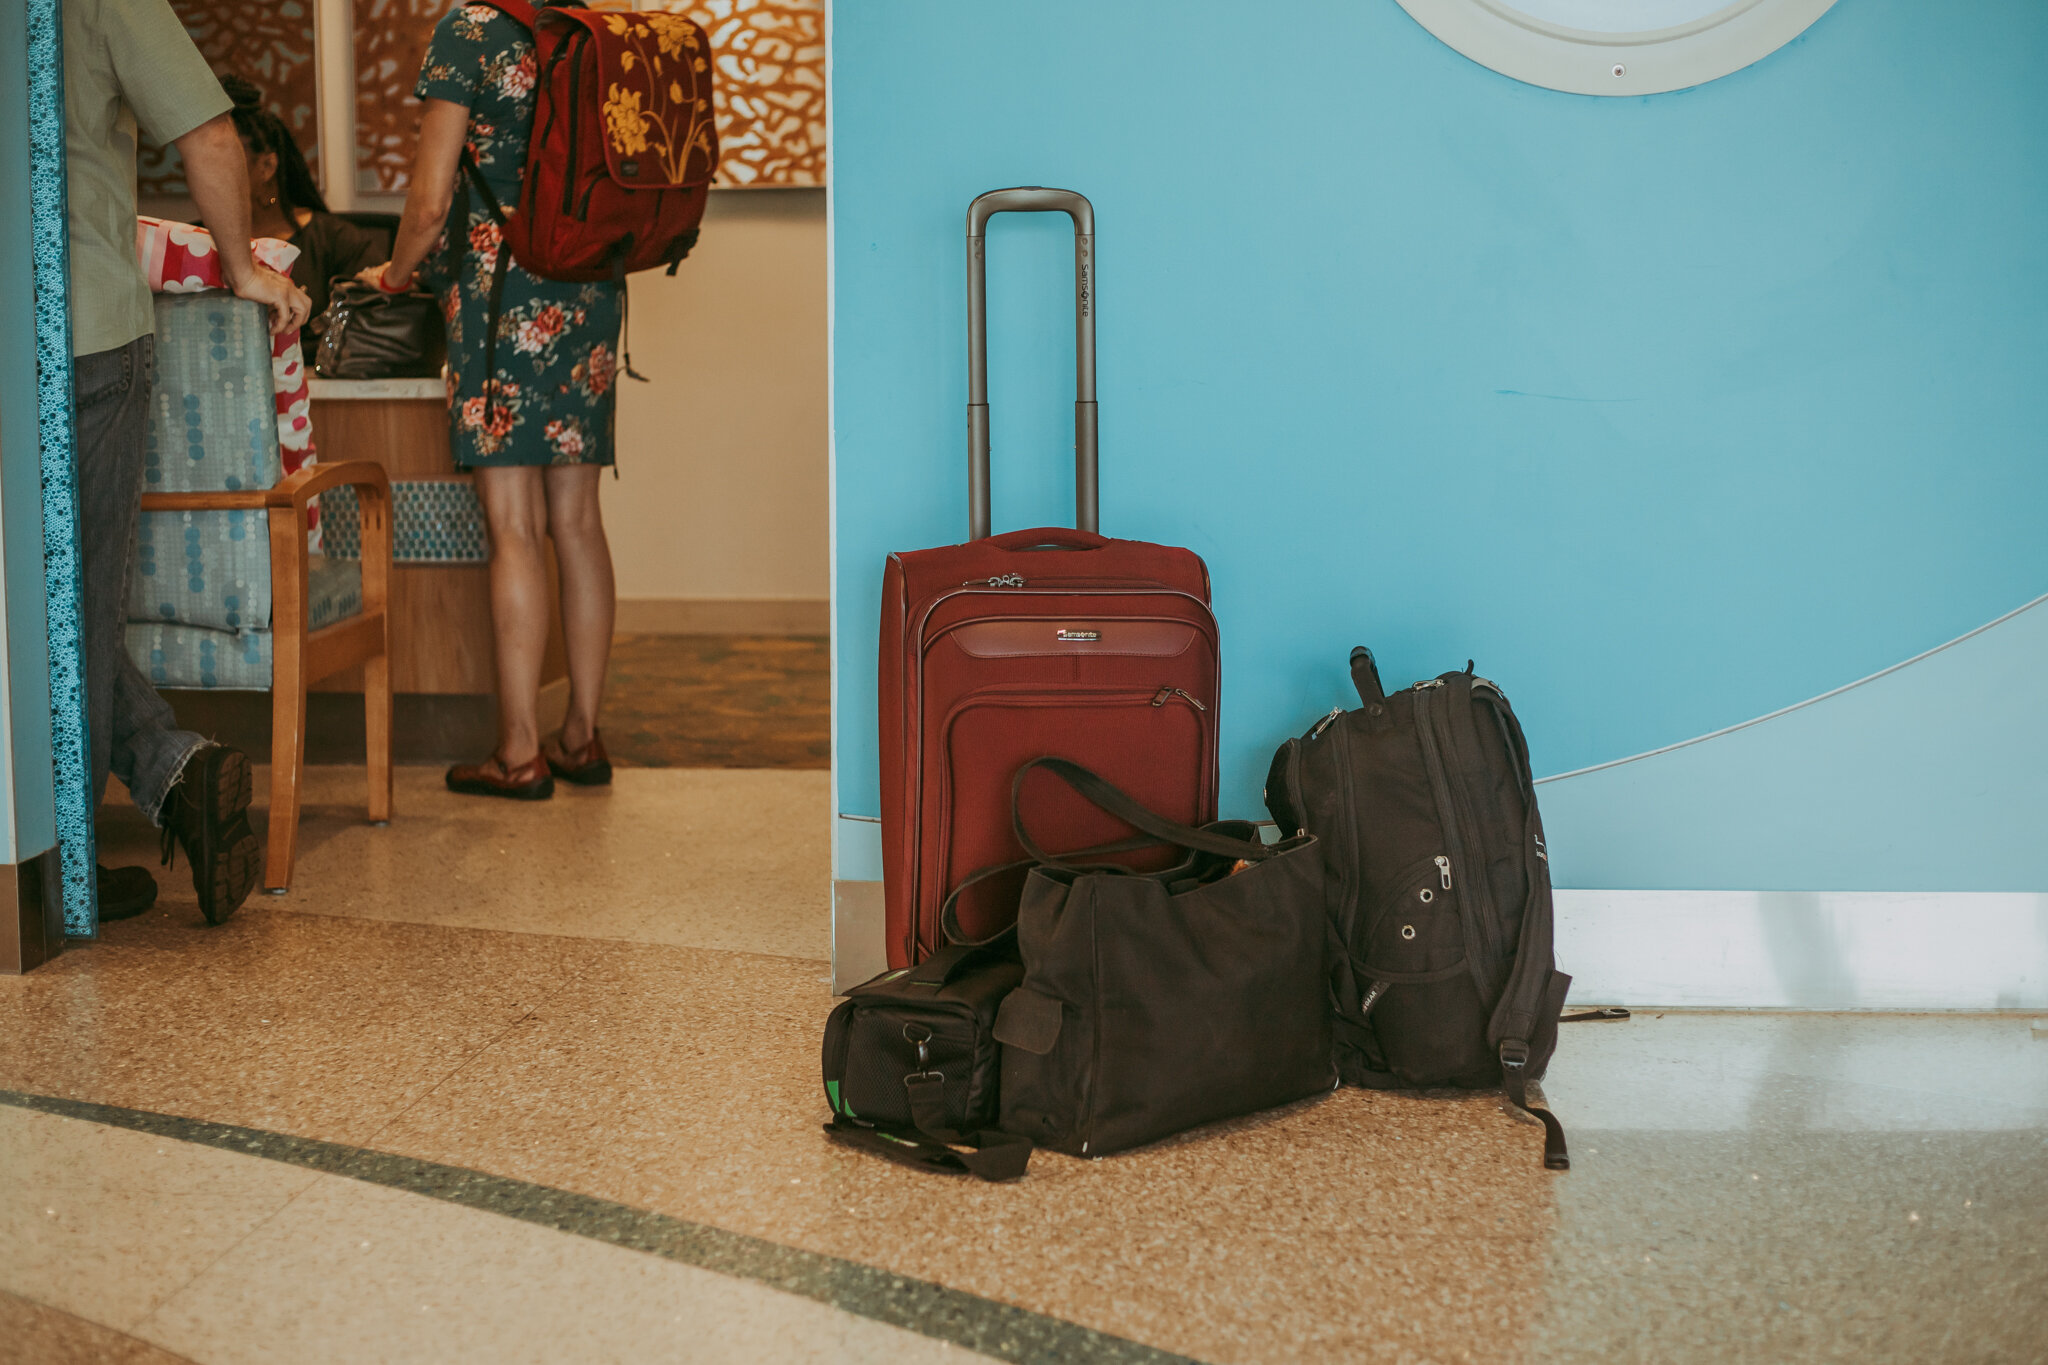 bags outside of registration door at hospital as parents check in for induction